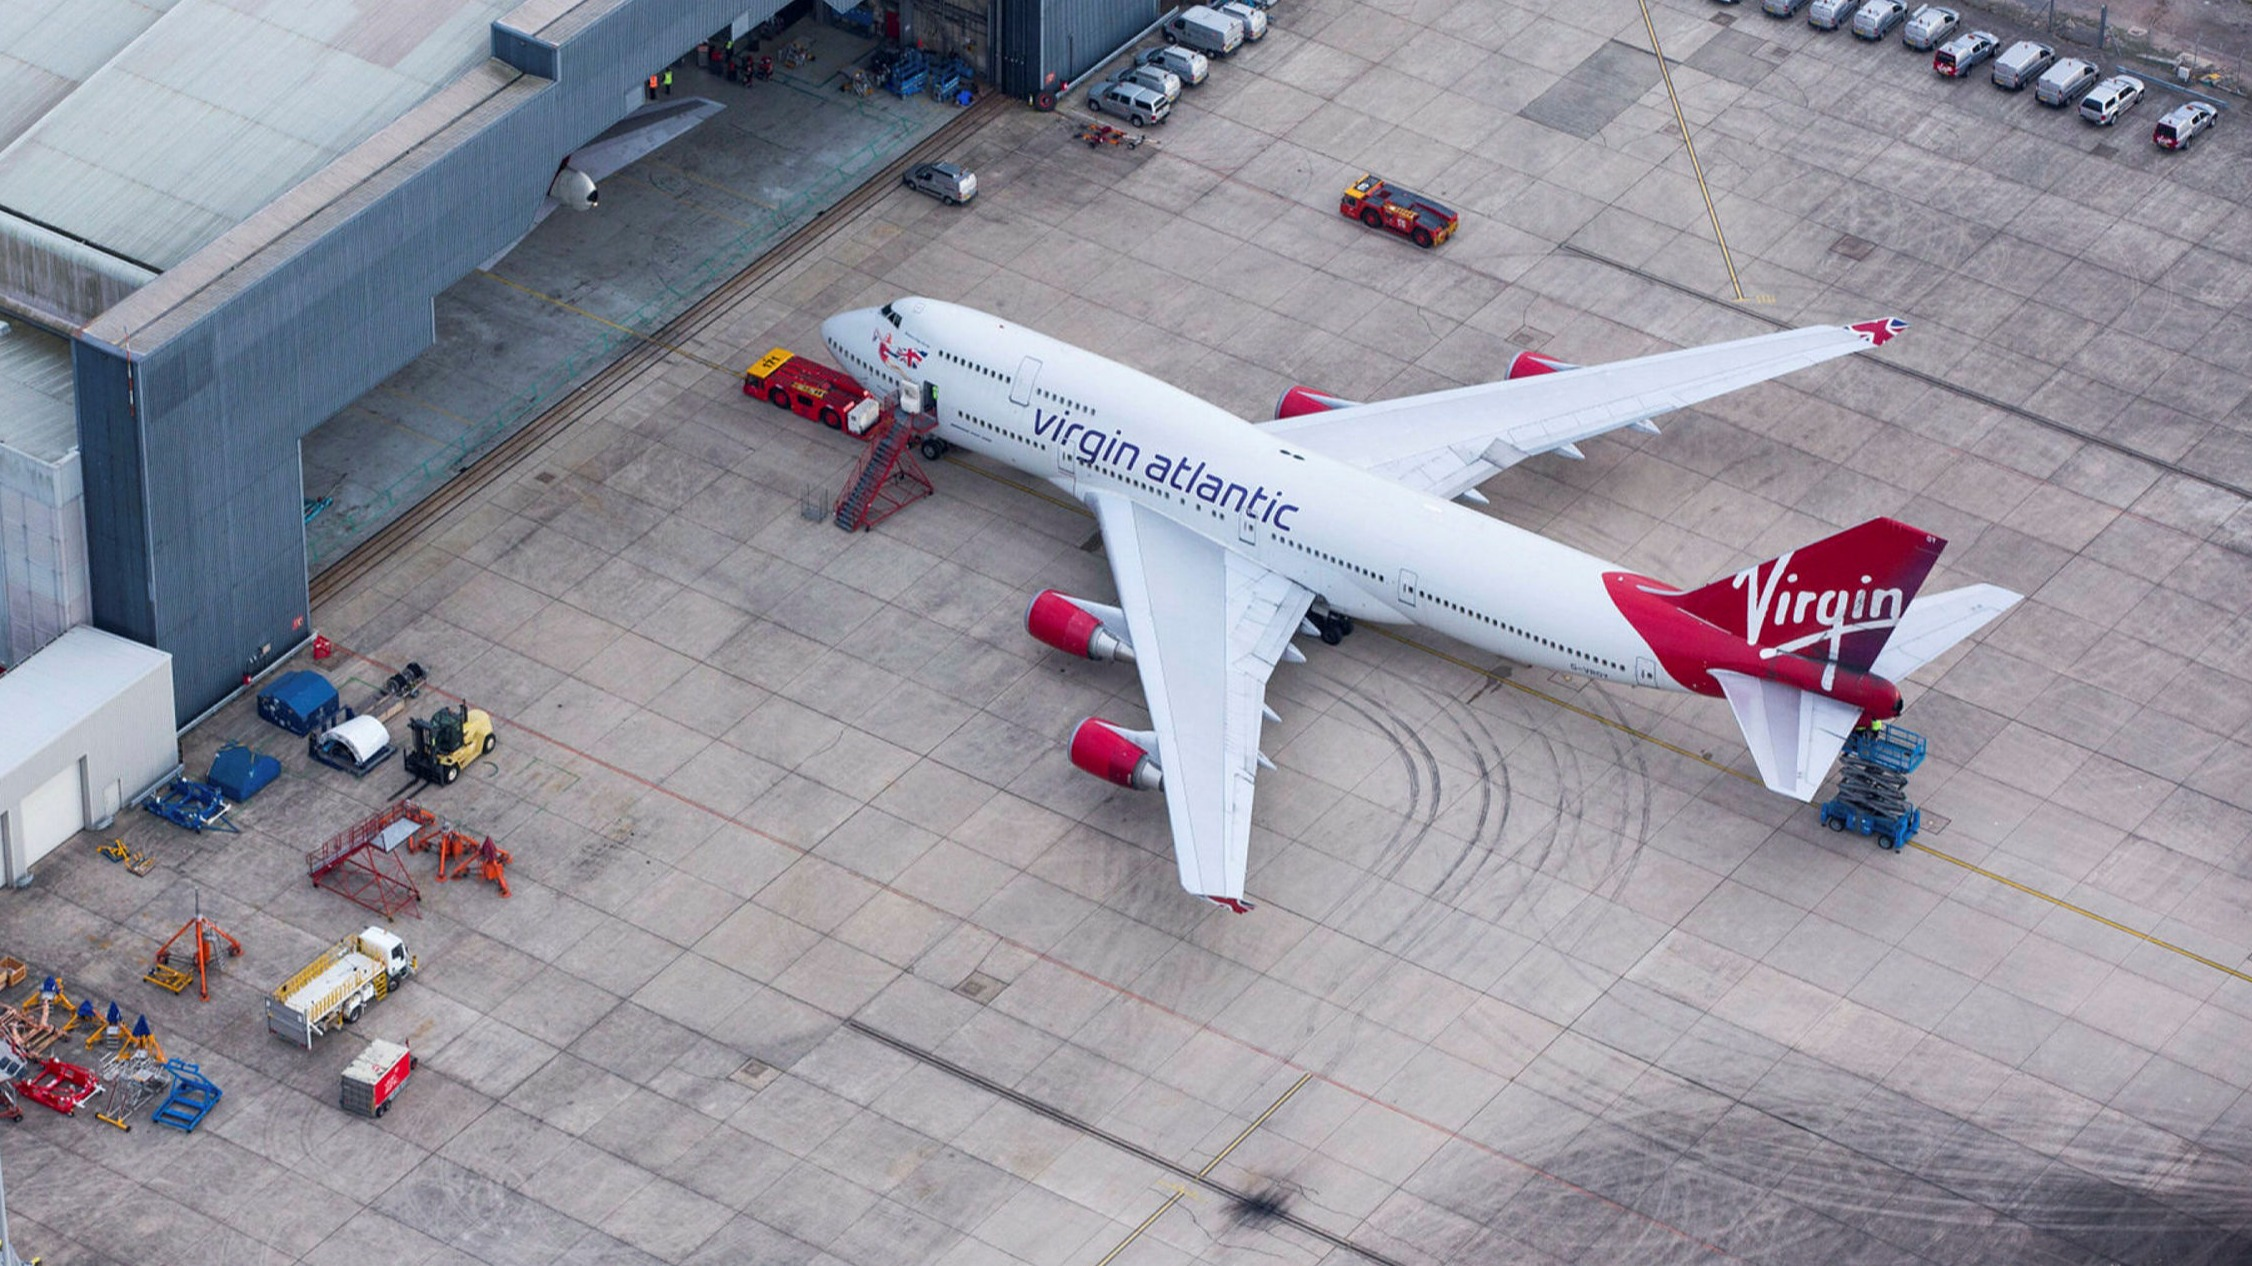 Virgin Atlantic to cut third of staff to survive Covid-19 crisis ...